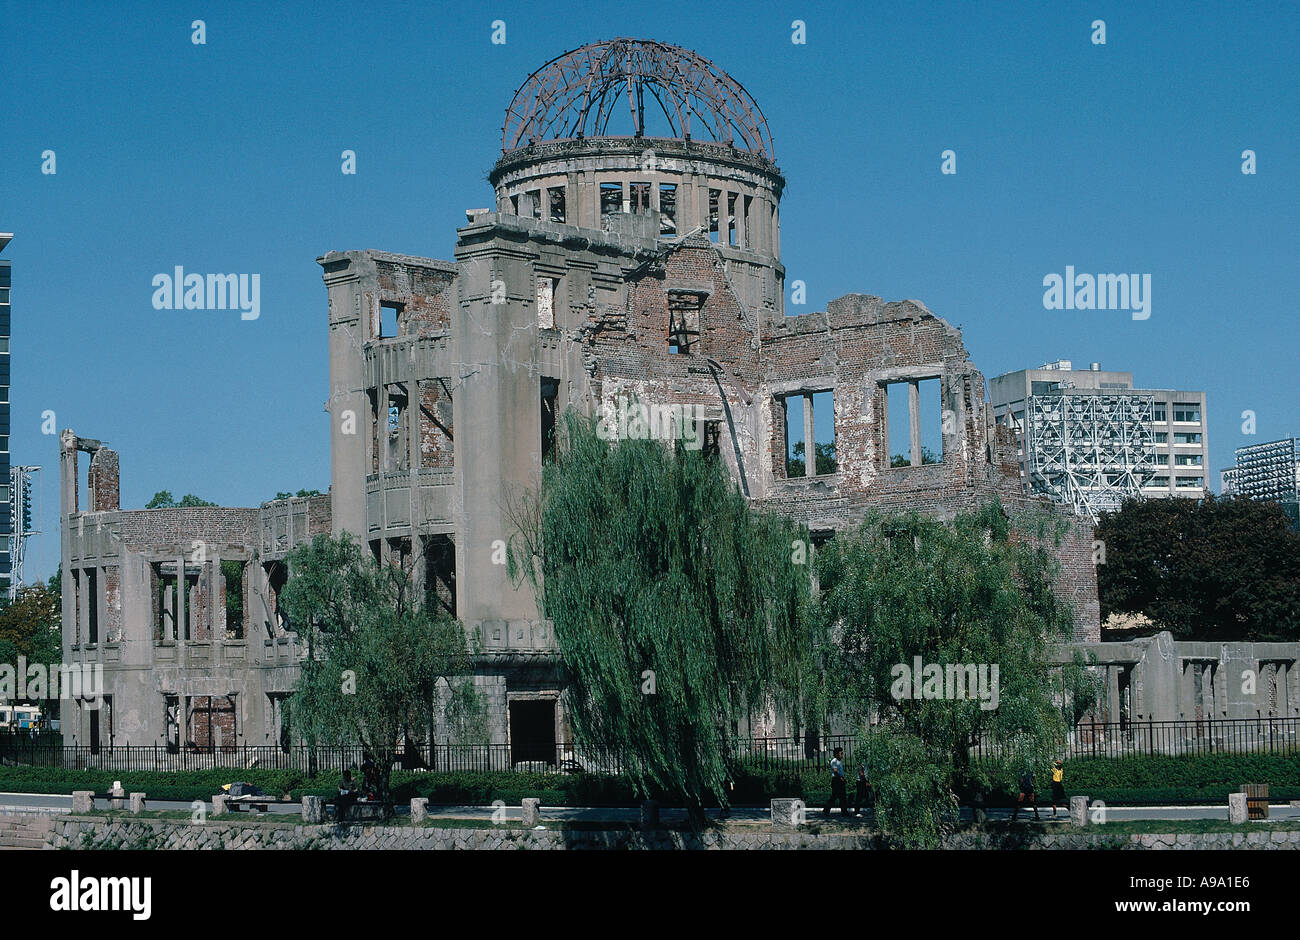 JAPAN Honshu Hiroshima The A Bomb Dome at Ground Zero Ruins at the epicentre of the atomic bomb nuclear explosion. - Stock Image